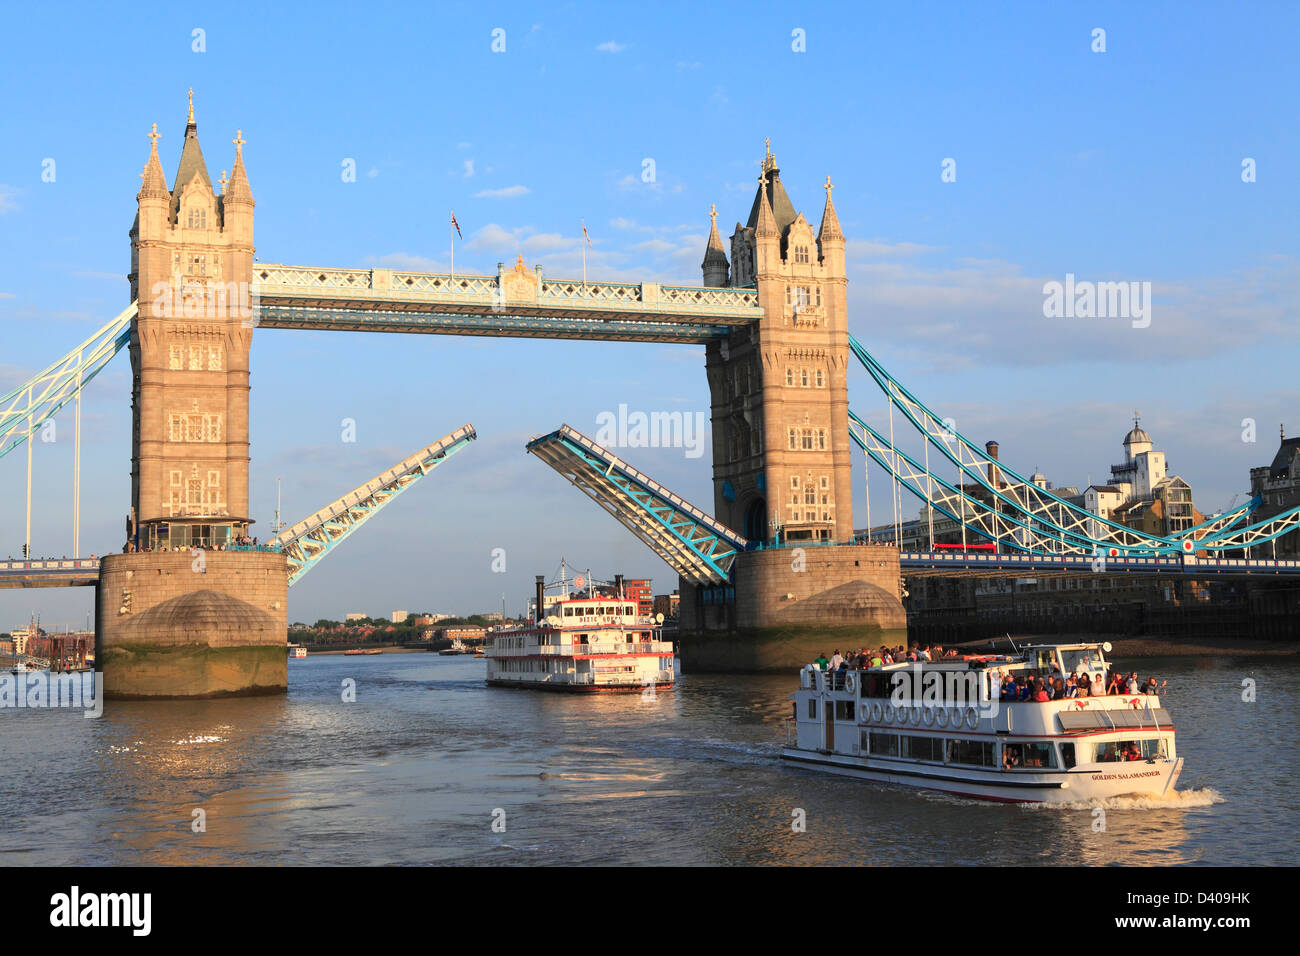 Tower Bridge open with pleasure cruise boat passing through, River Thames, London, England, UK, Britain, GB - Stock Image